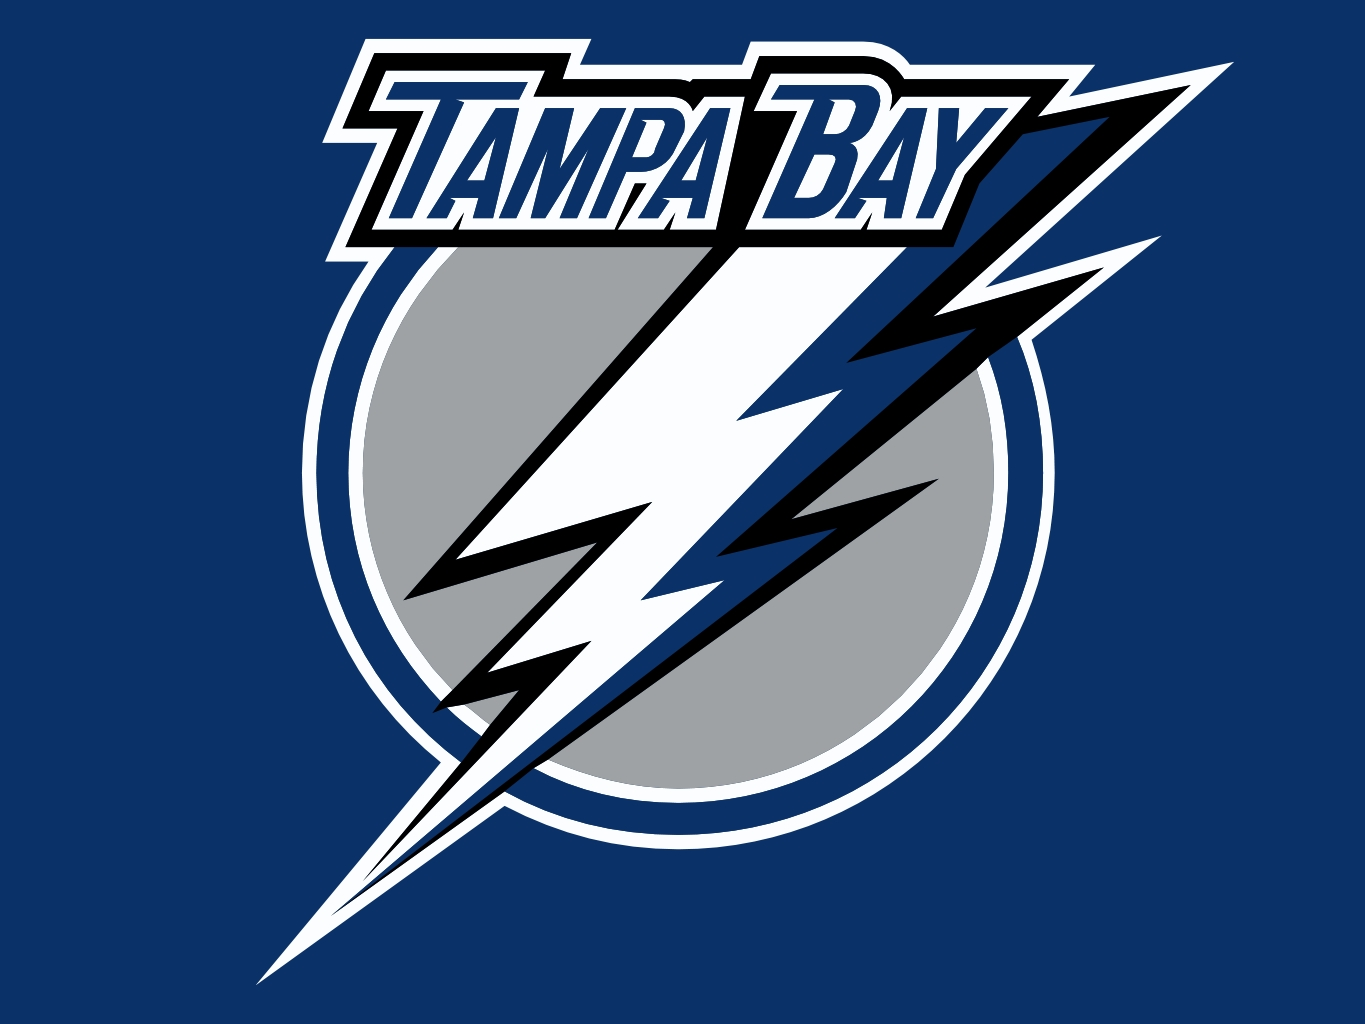 Tampa Bay Lightning Wallpaper 1365x1024